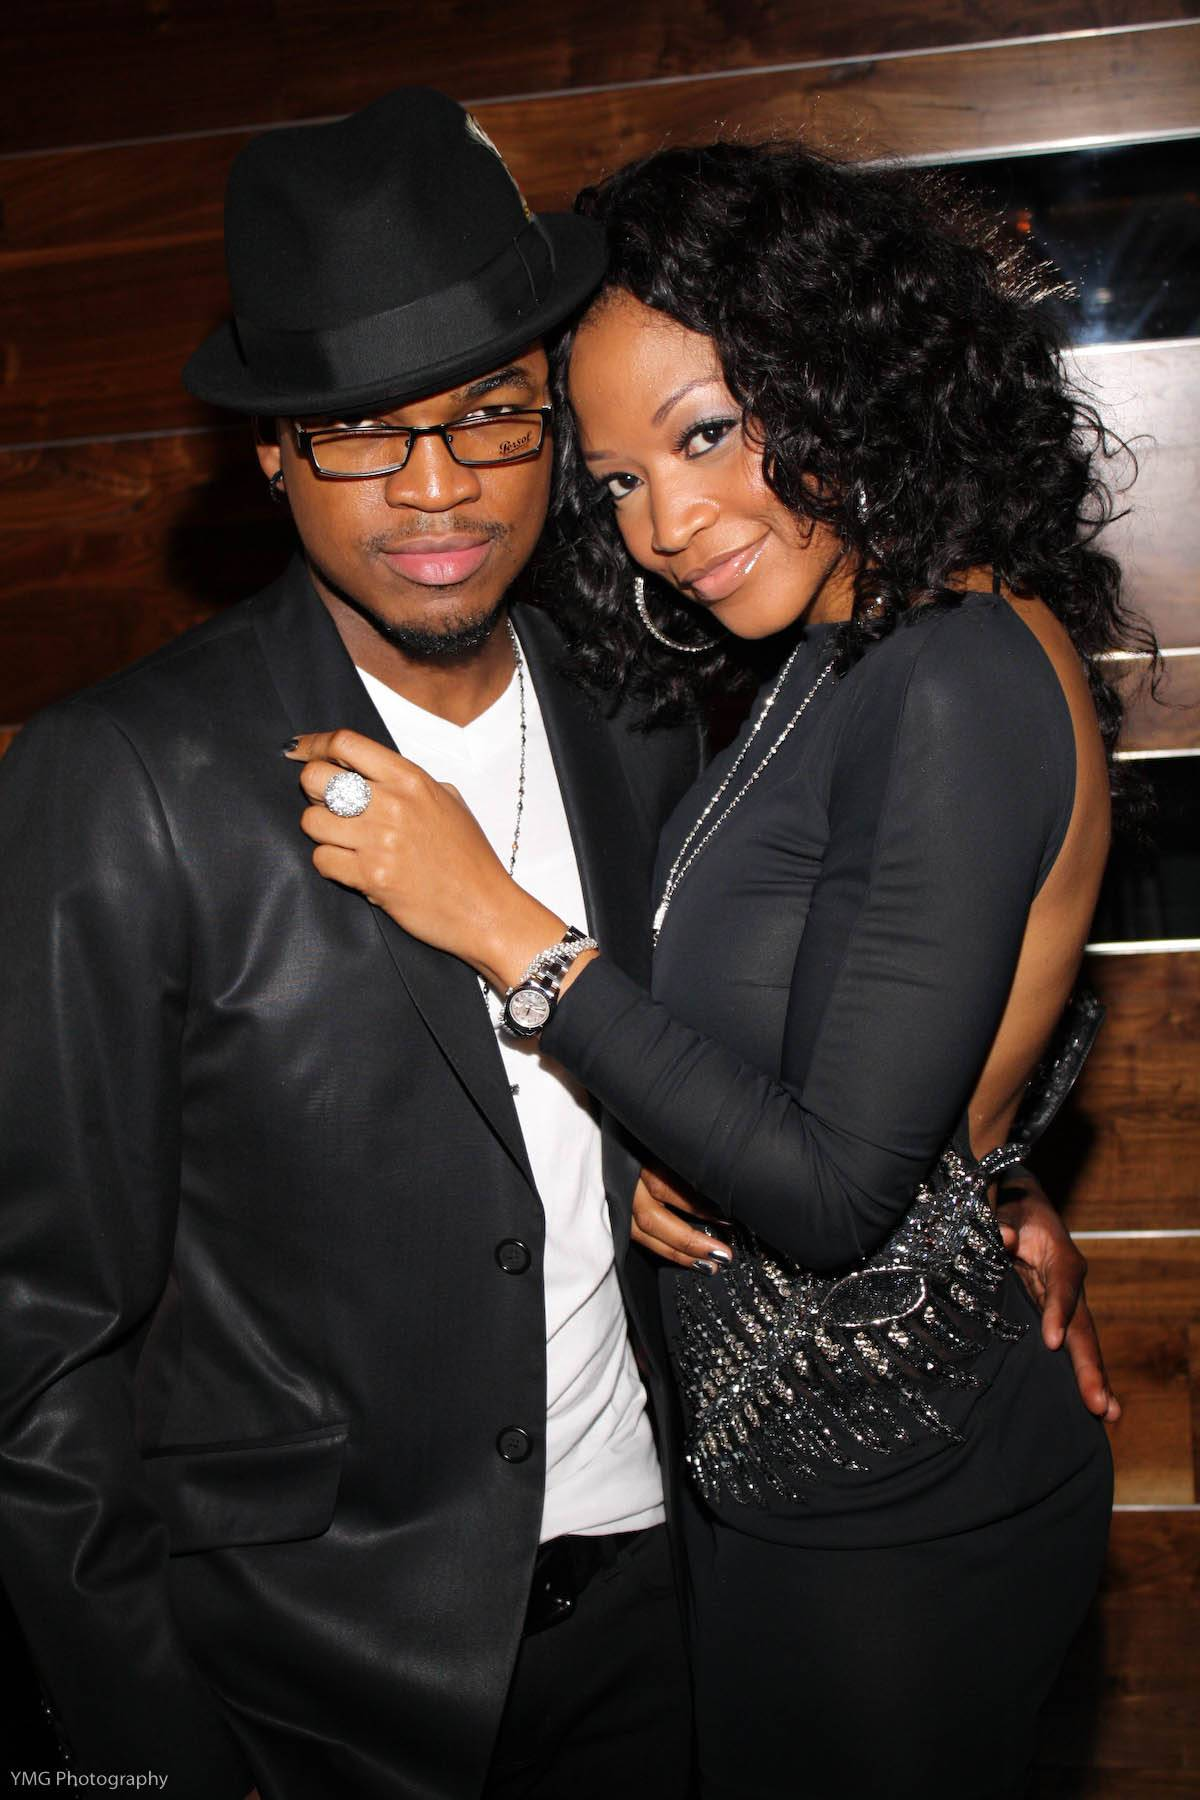 Ne-Yo and Mo Shaw, owners of Emerlyn & Ester